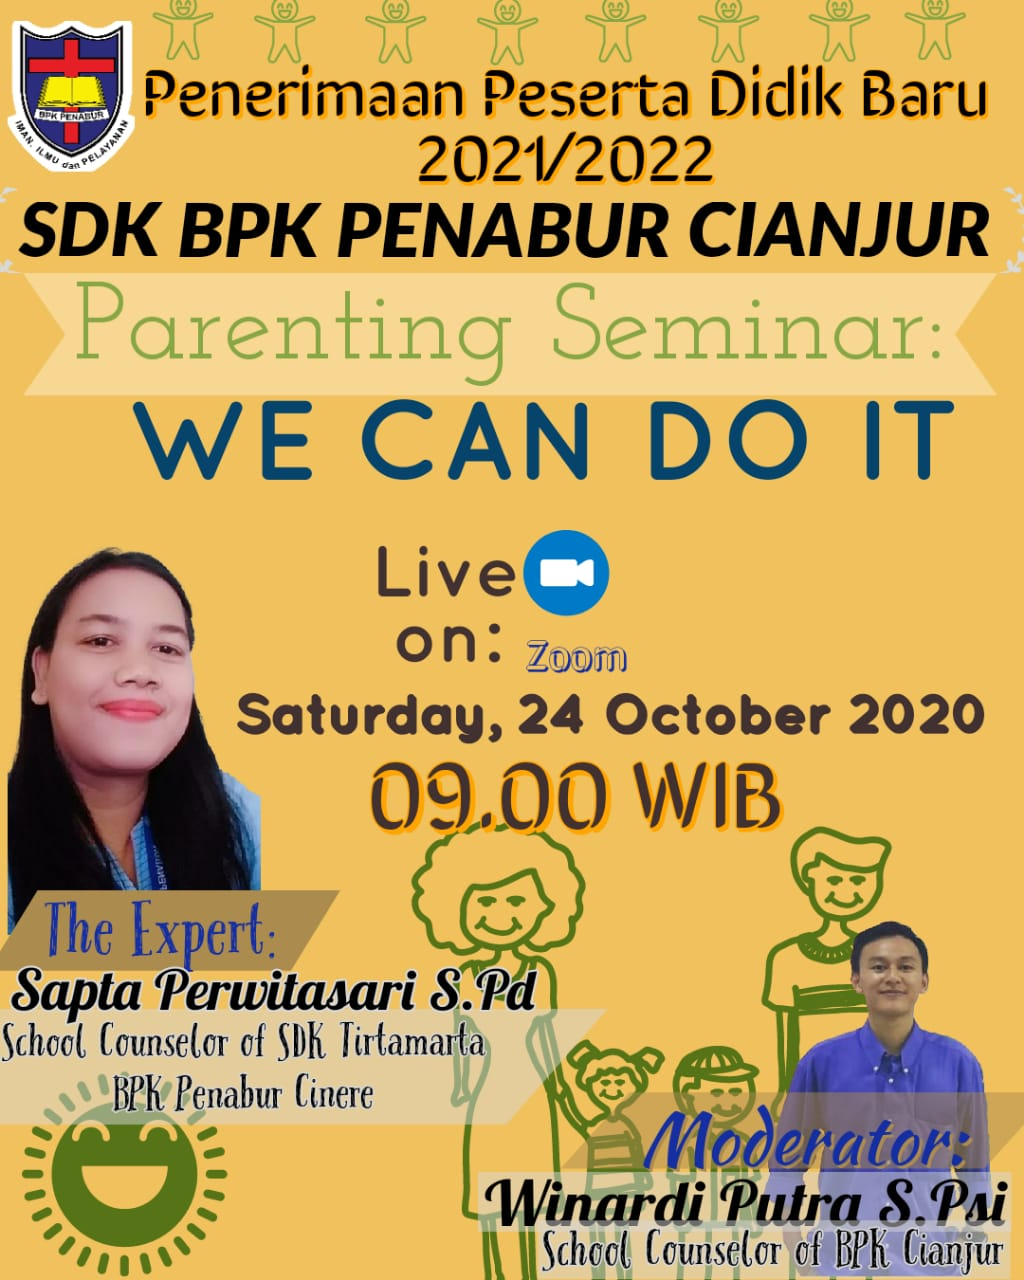 Parenting Seminar: WE CAN DO IT